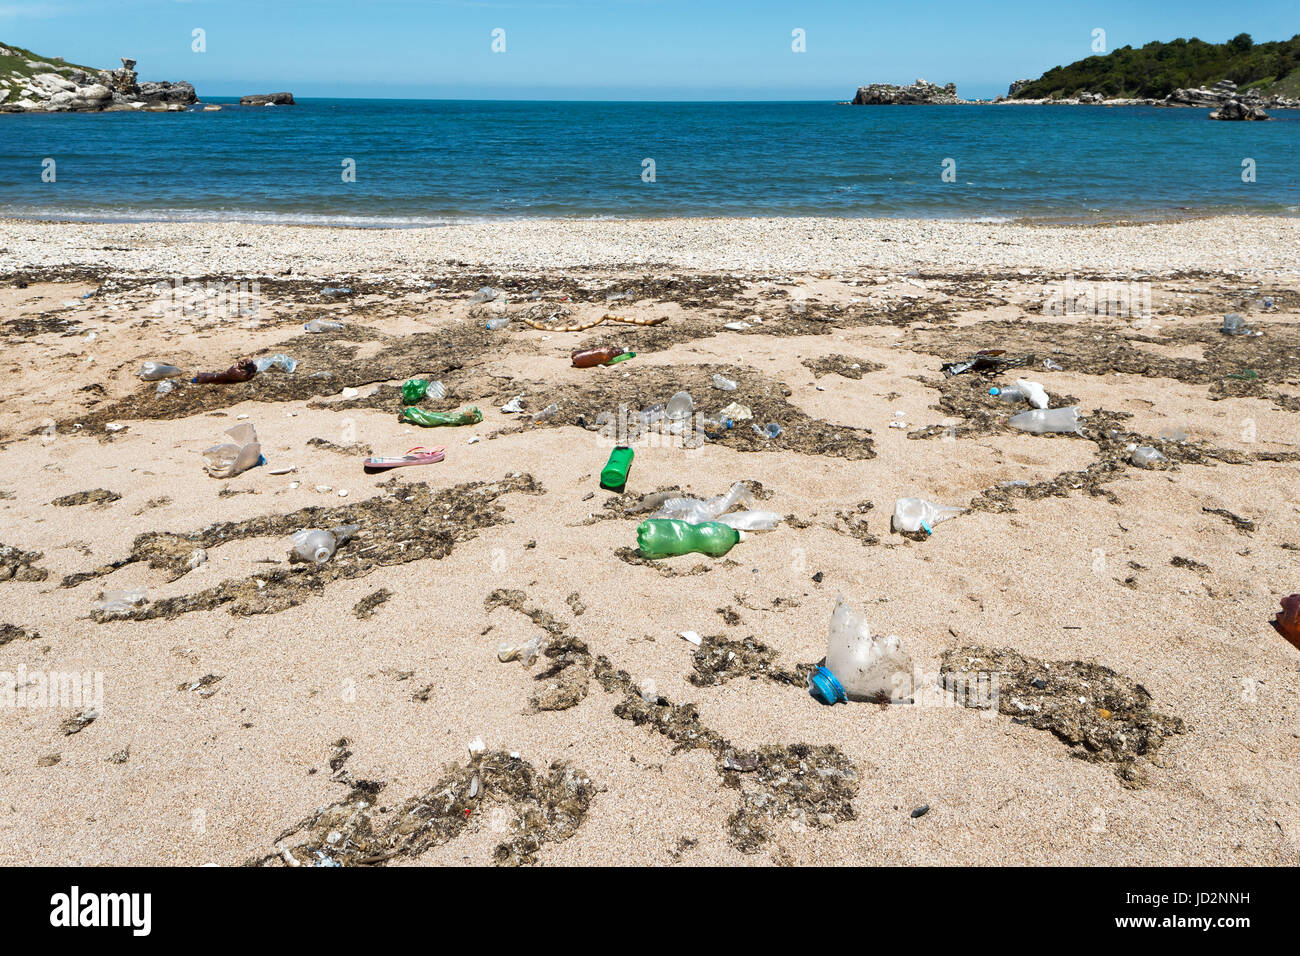 Garbage Pollutions on Dirty Beach Stock Photo